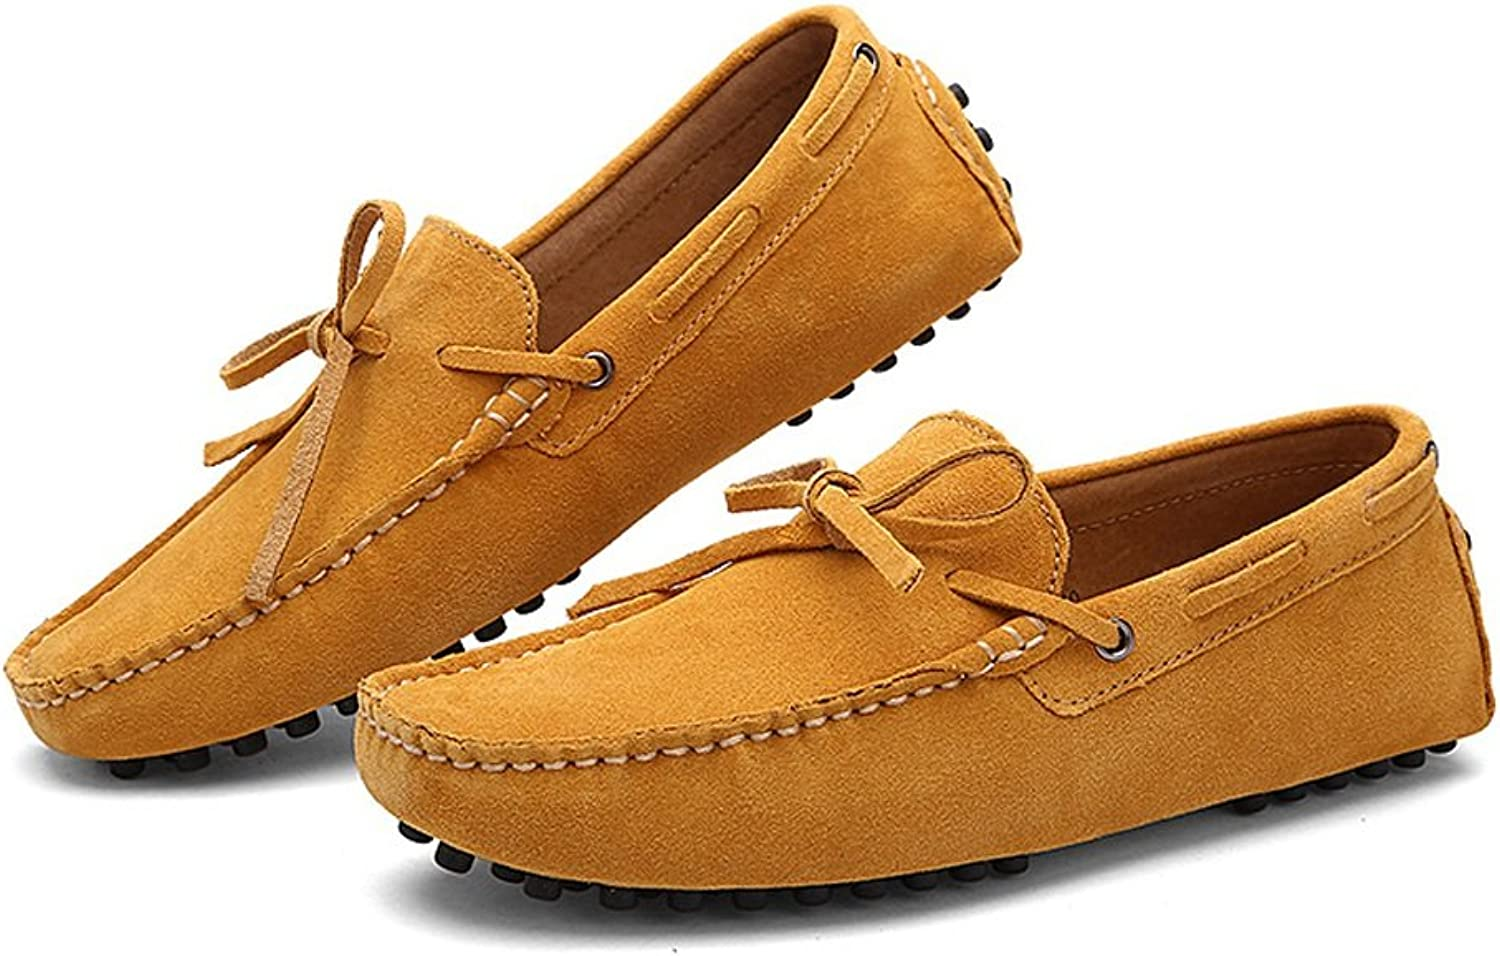 Men's Driving Loafers Genuine Leather Boat Moccasins Rubber Studs Sole (color   Brown, Size   6.5 UK)